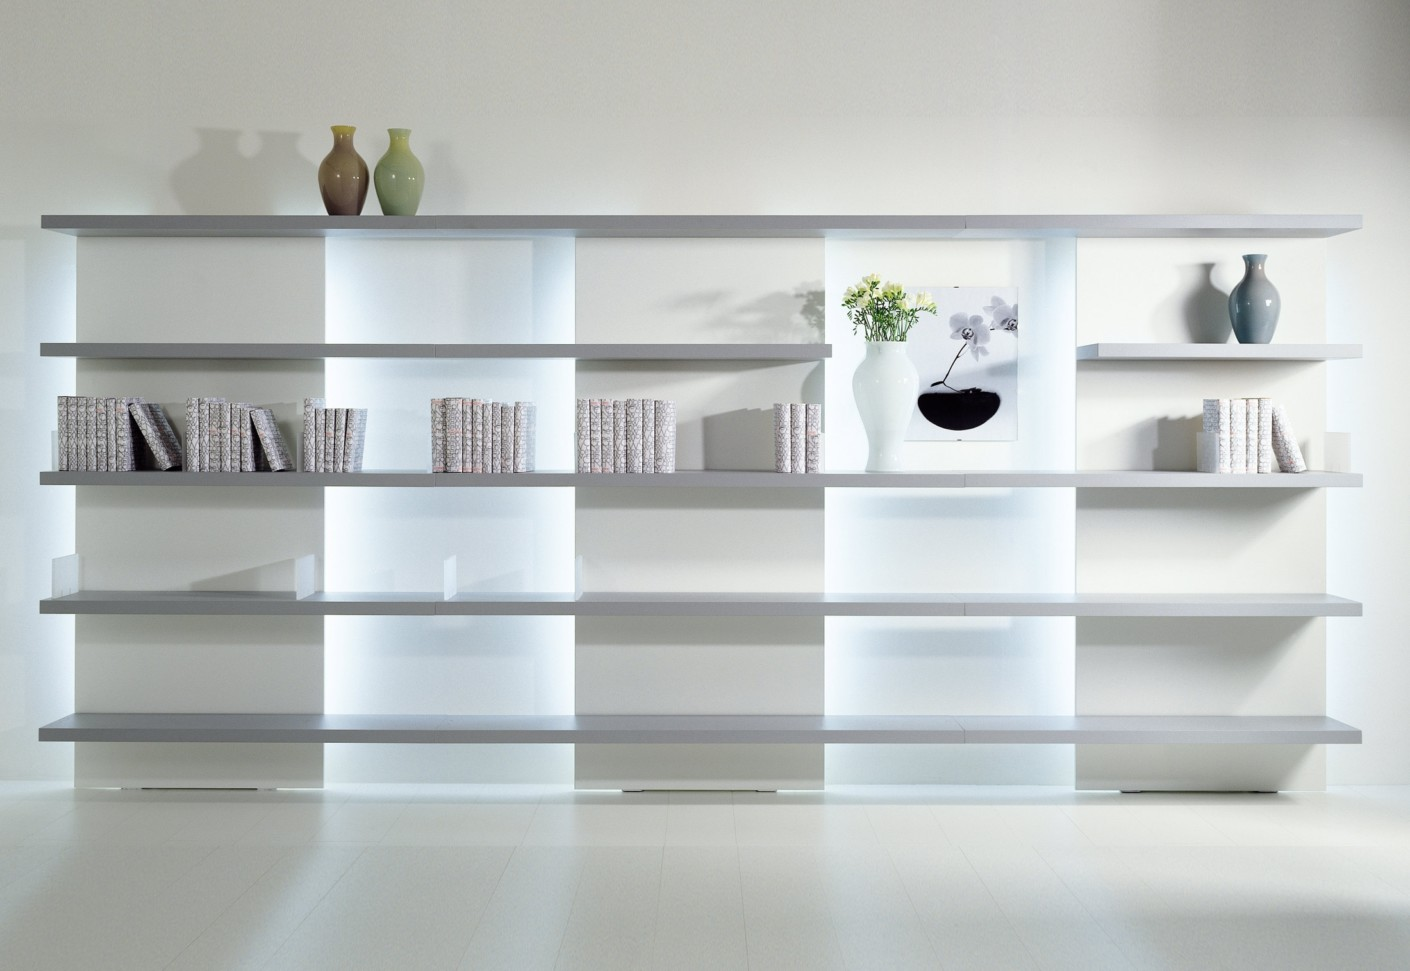 shelving units RHEGQQZ